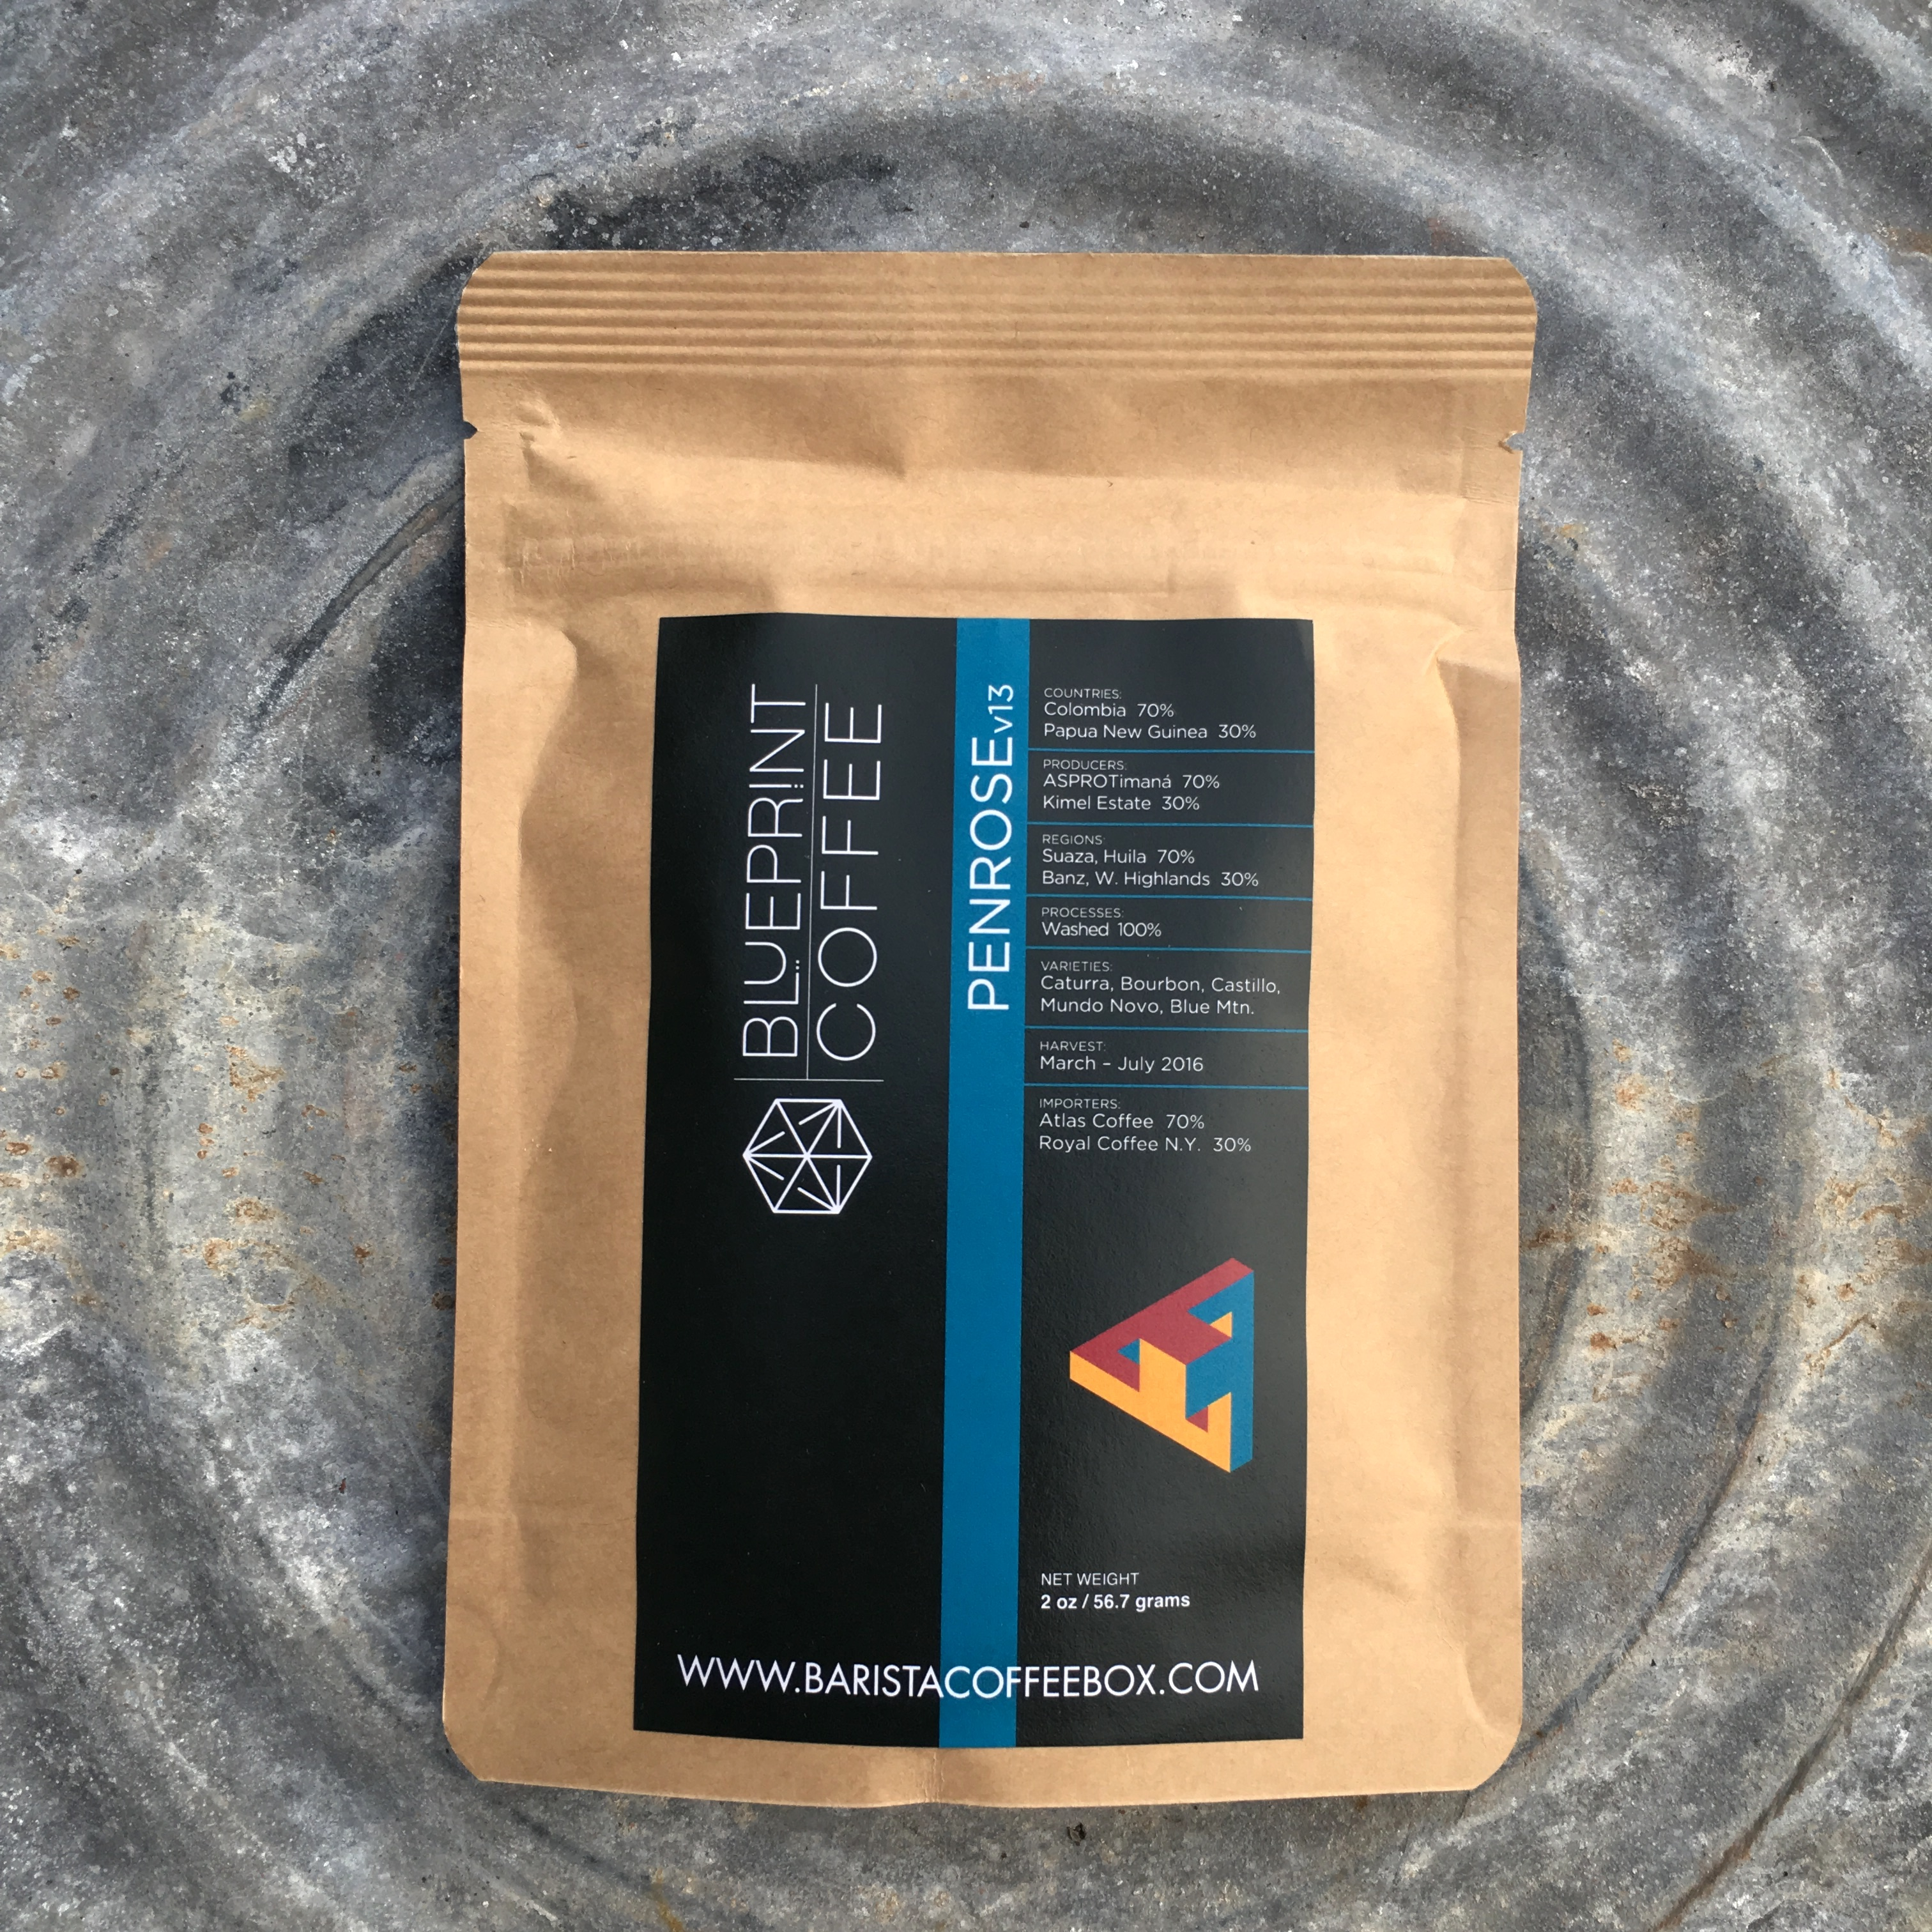 Blueprint coffee penrose v13 kc coffee geek weve arrived at the last of the coffees from julys barista coffee box another 2 component blend from blueprint coffee in st louis malvernweather Gallery